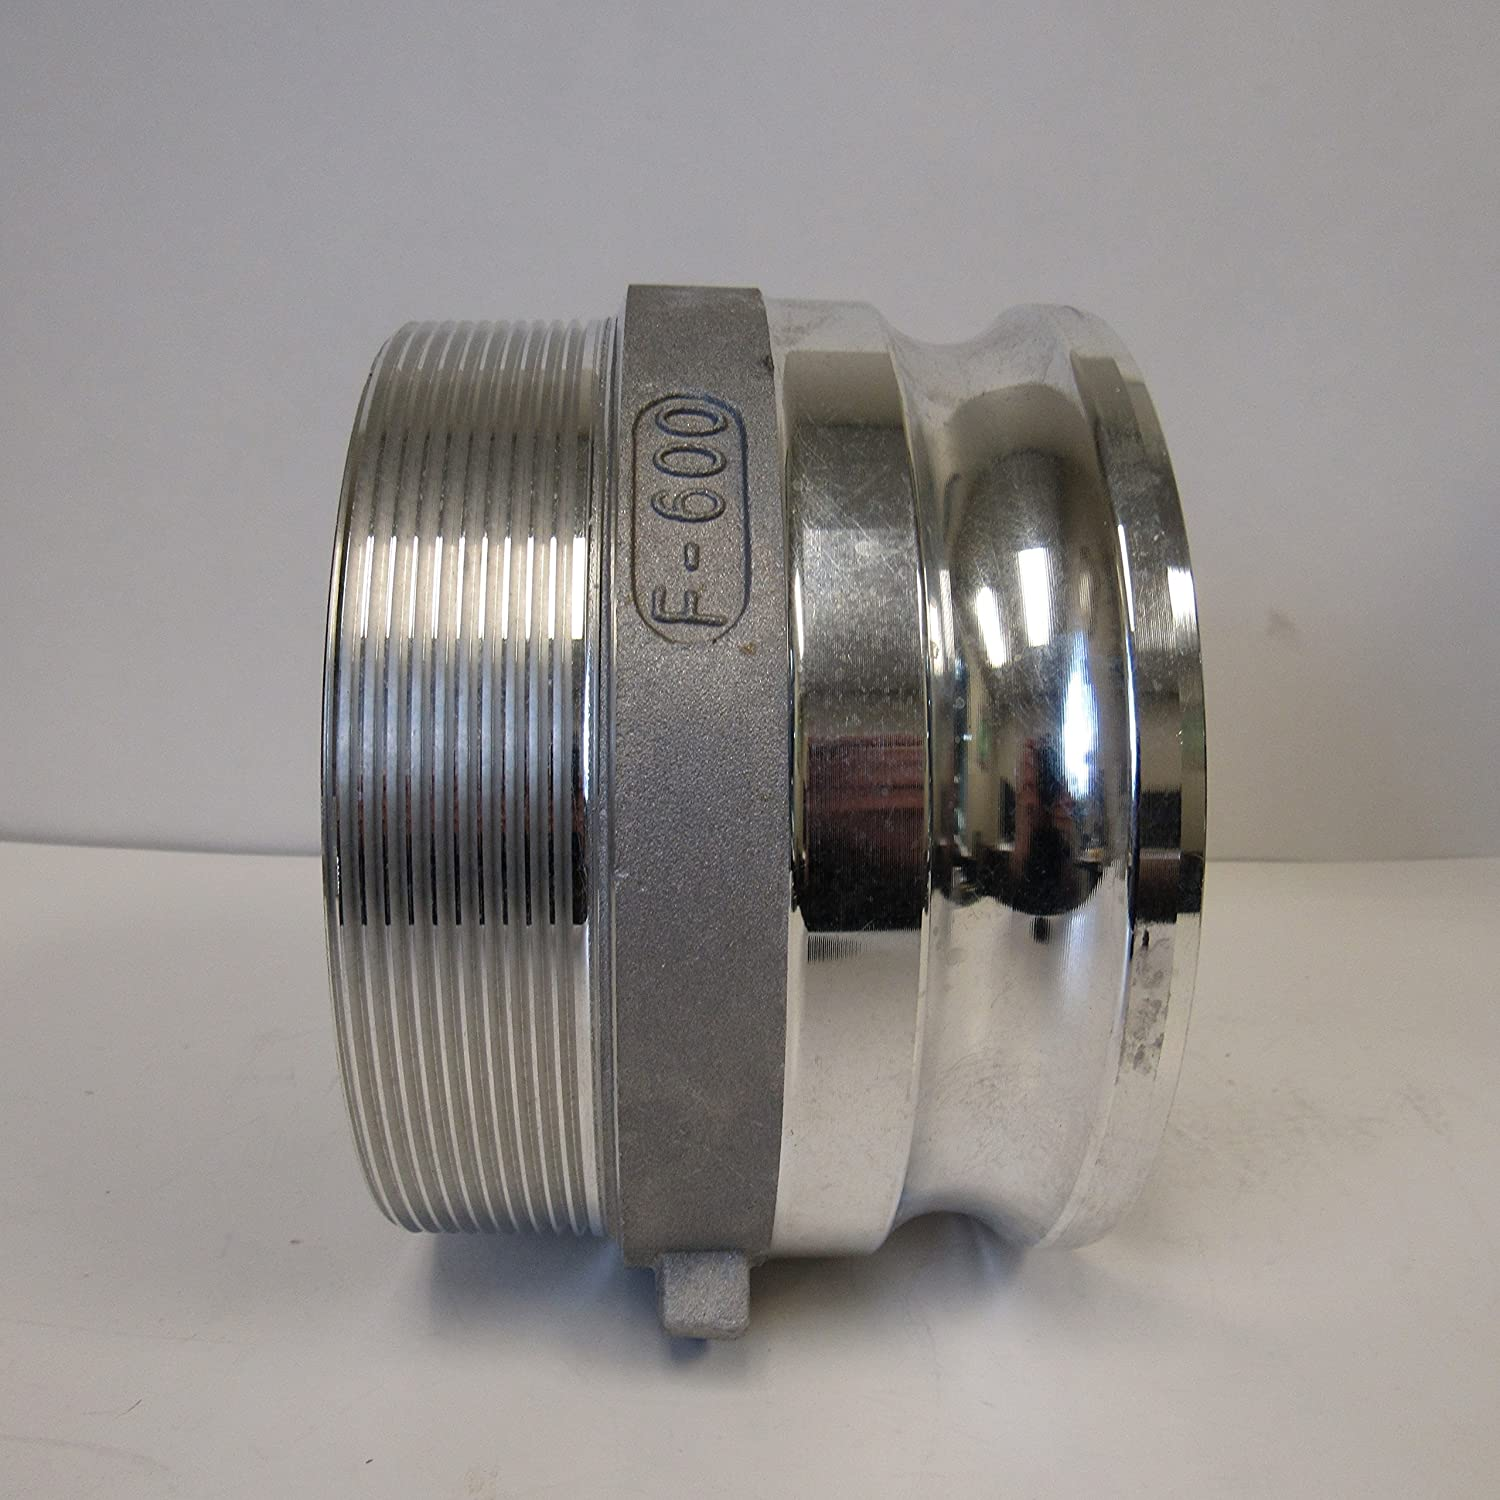 CAMLOCK 600F ALUMINUM CAM /& GROOVE FITTING; 6 INCH MALE ADAPTER// MALE NPT